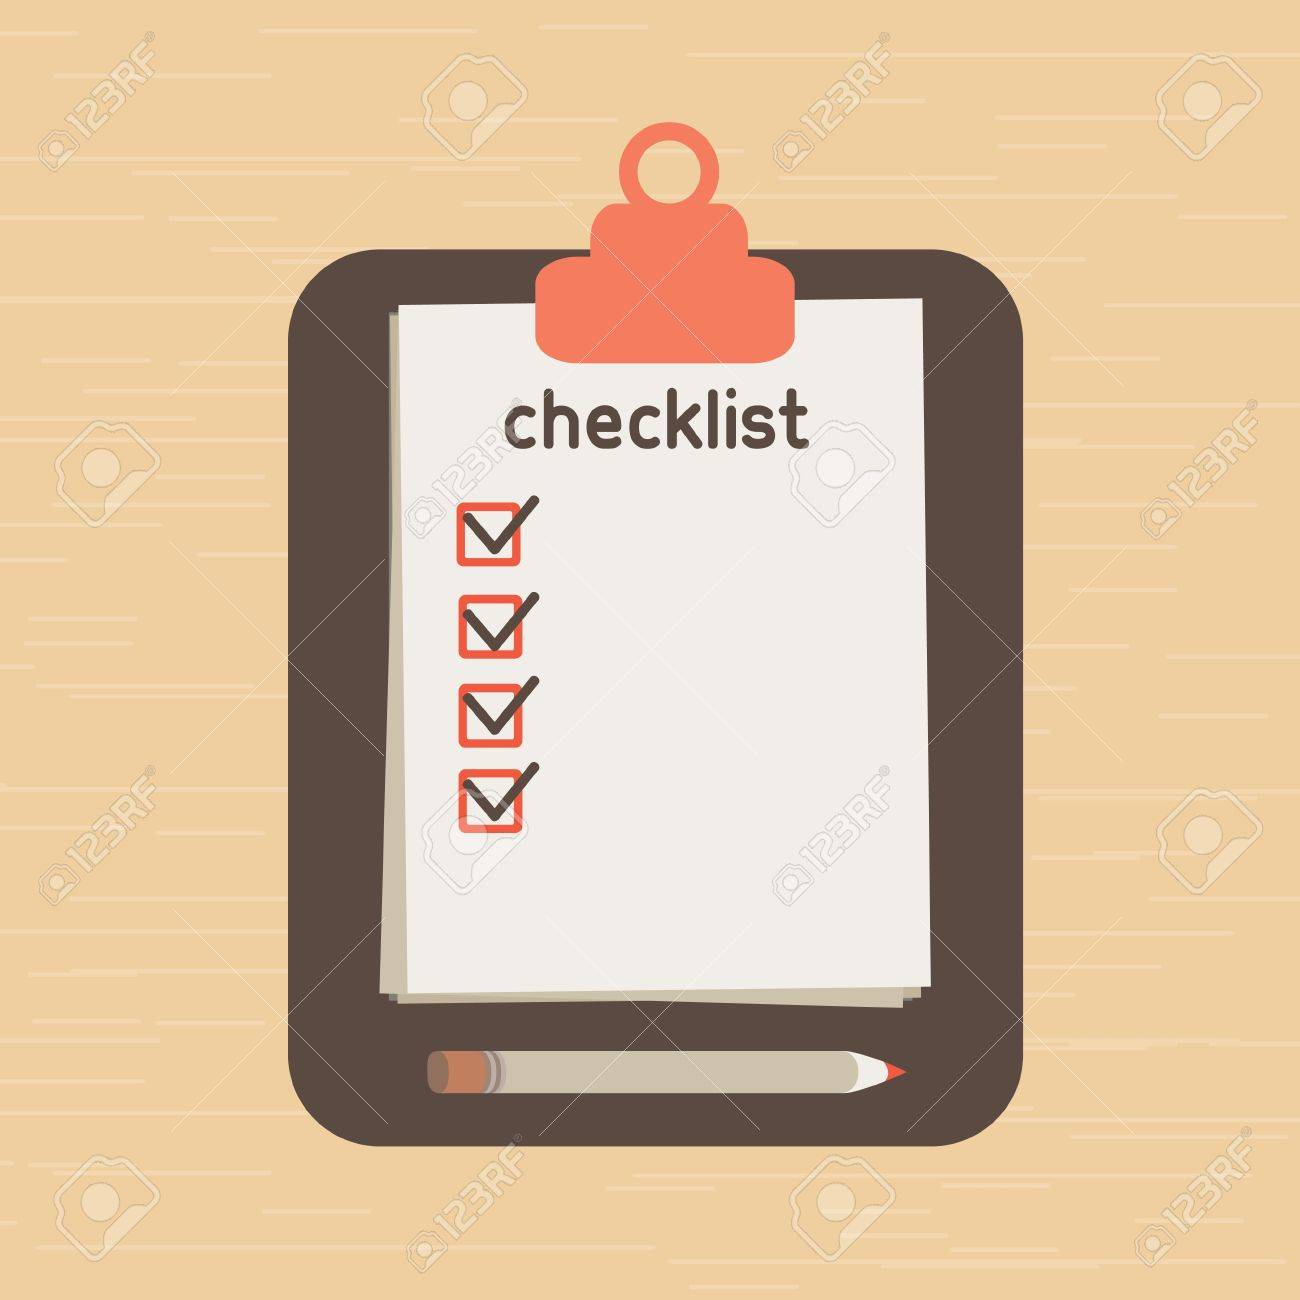 the list put which it is necessary to execute. list of purchases. Stock Vector - 19188352